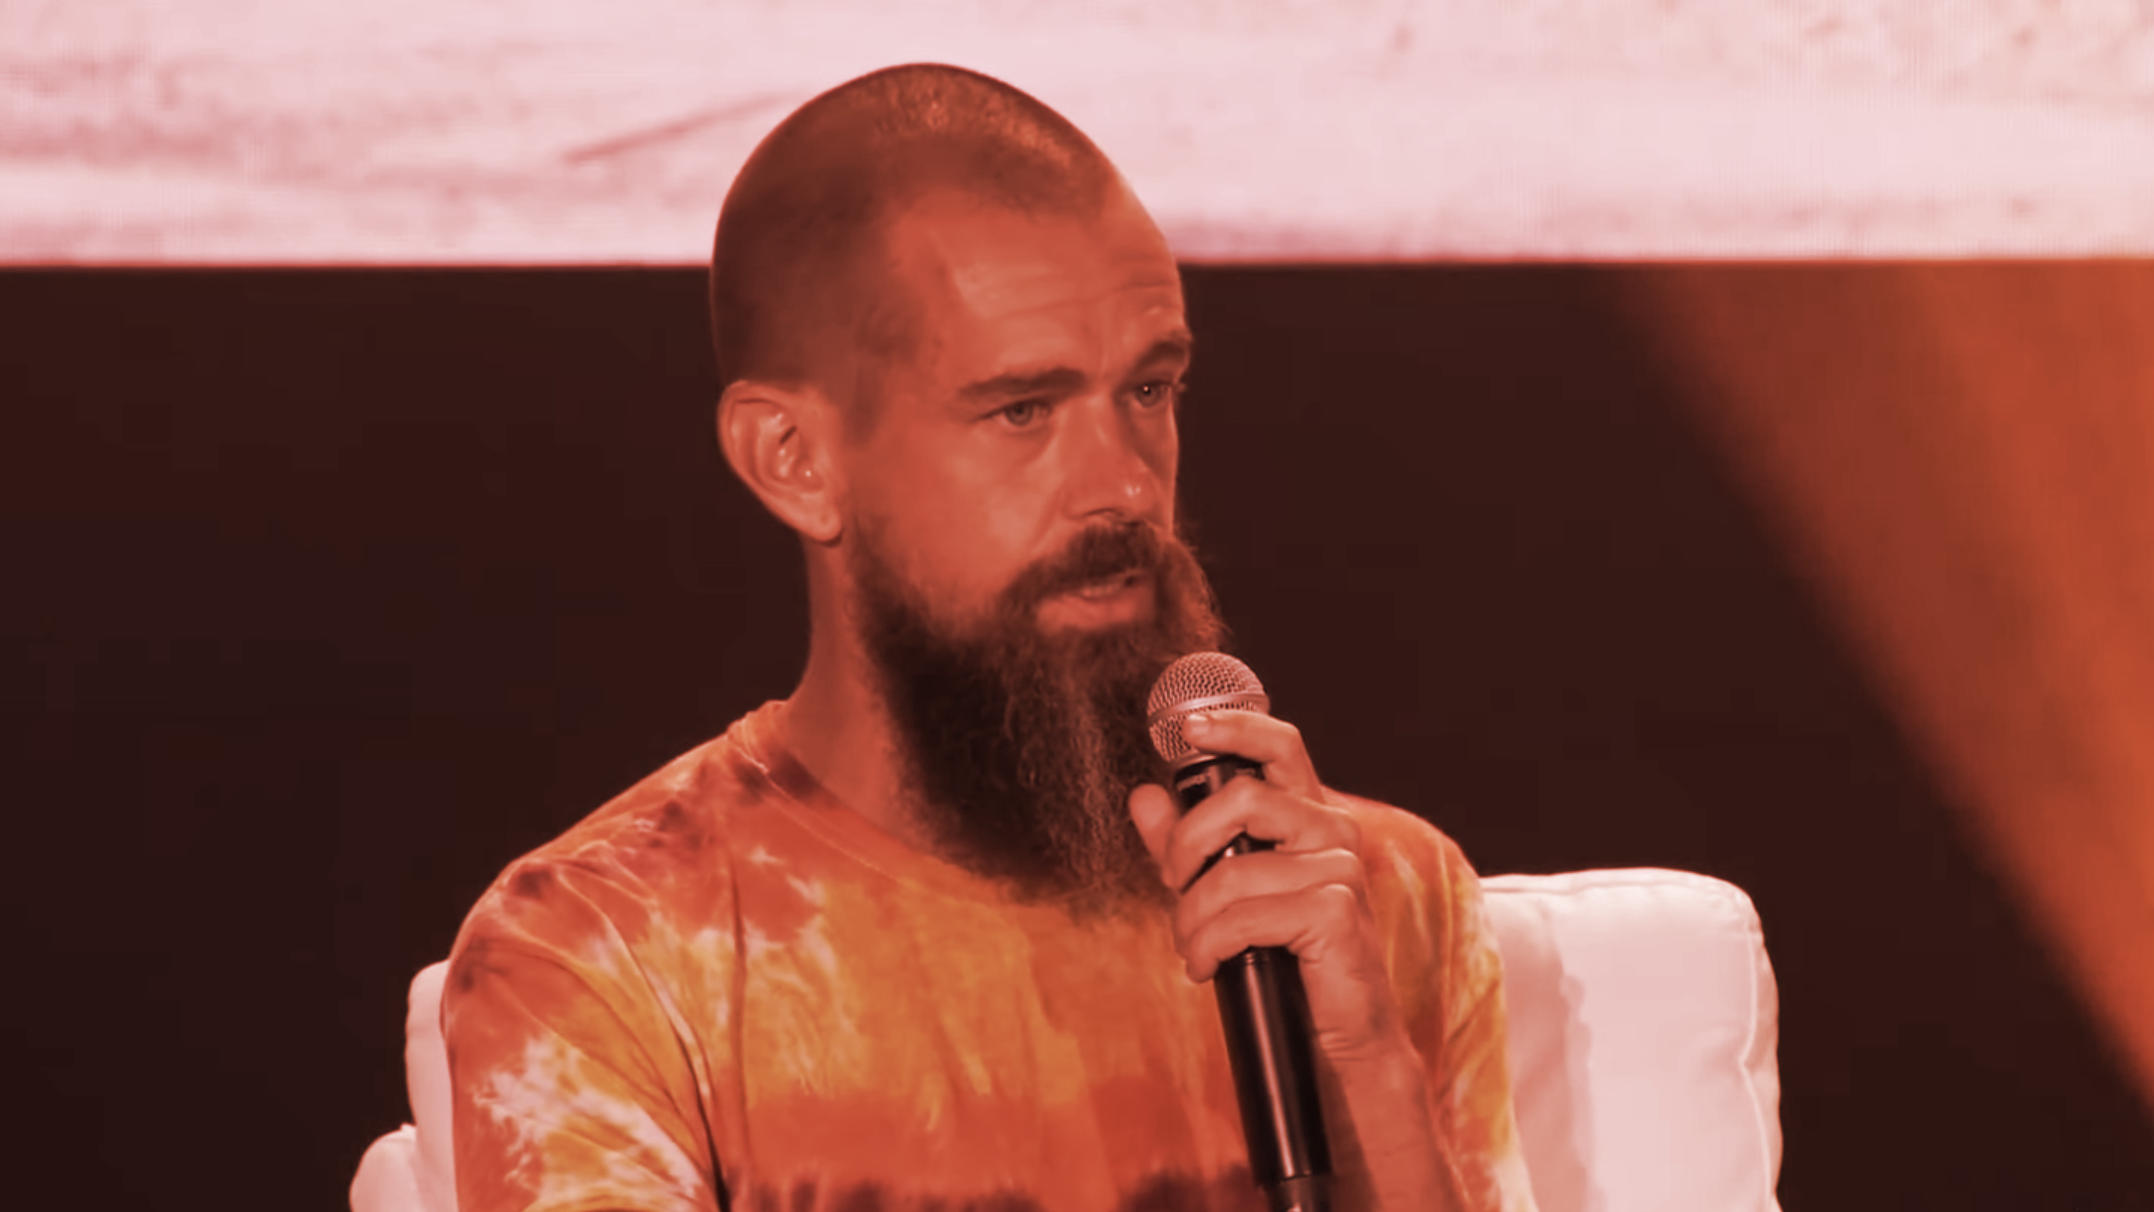 Jack Dorsey Is All In on Bitcoin: Ethereum, Dogecoin and Other Coins 'Don't Factor In at All'